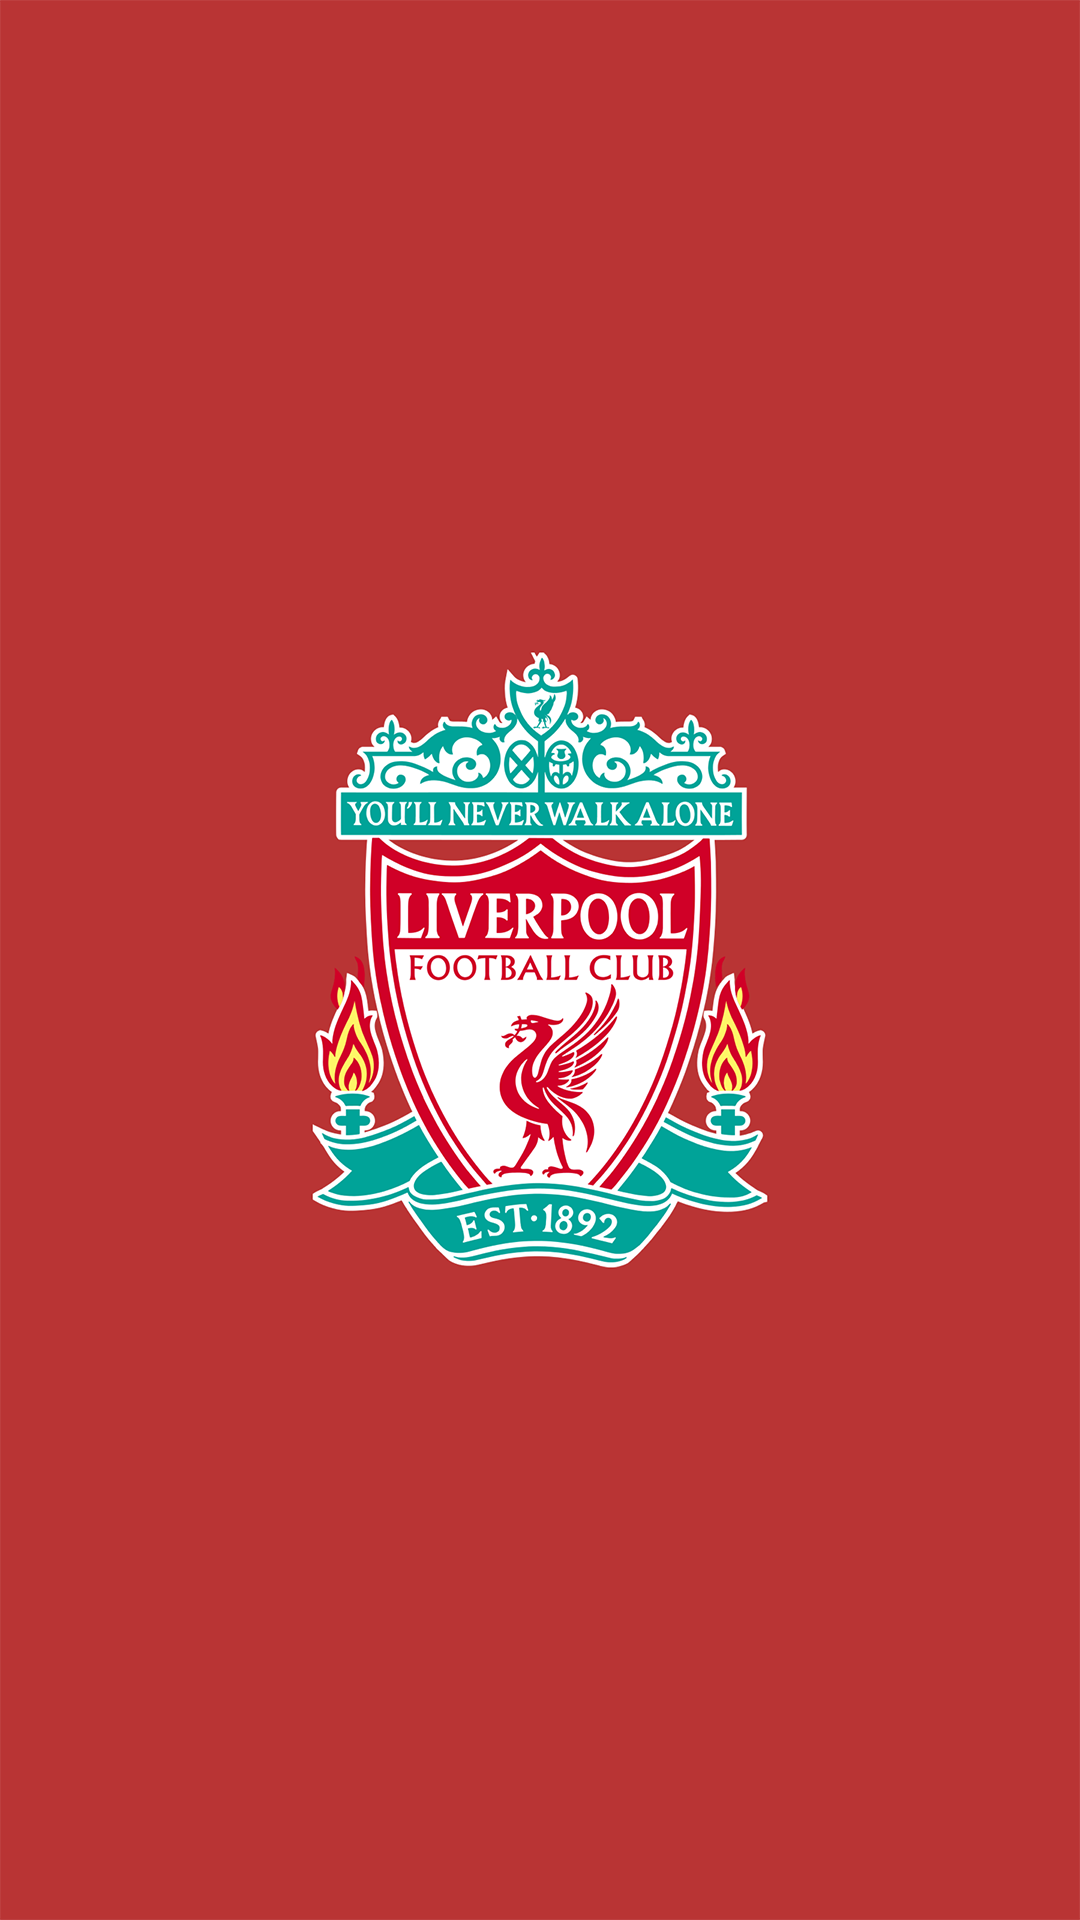 Wallpaper iphone liverpool -  Fc Liverpool Wallpapers Iphone 6s By Lirking20